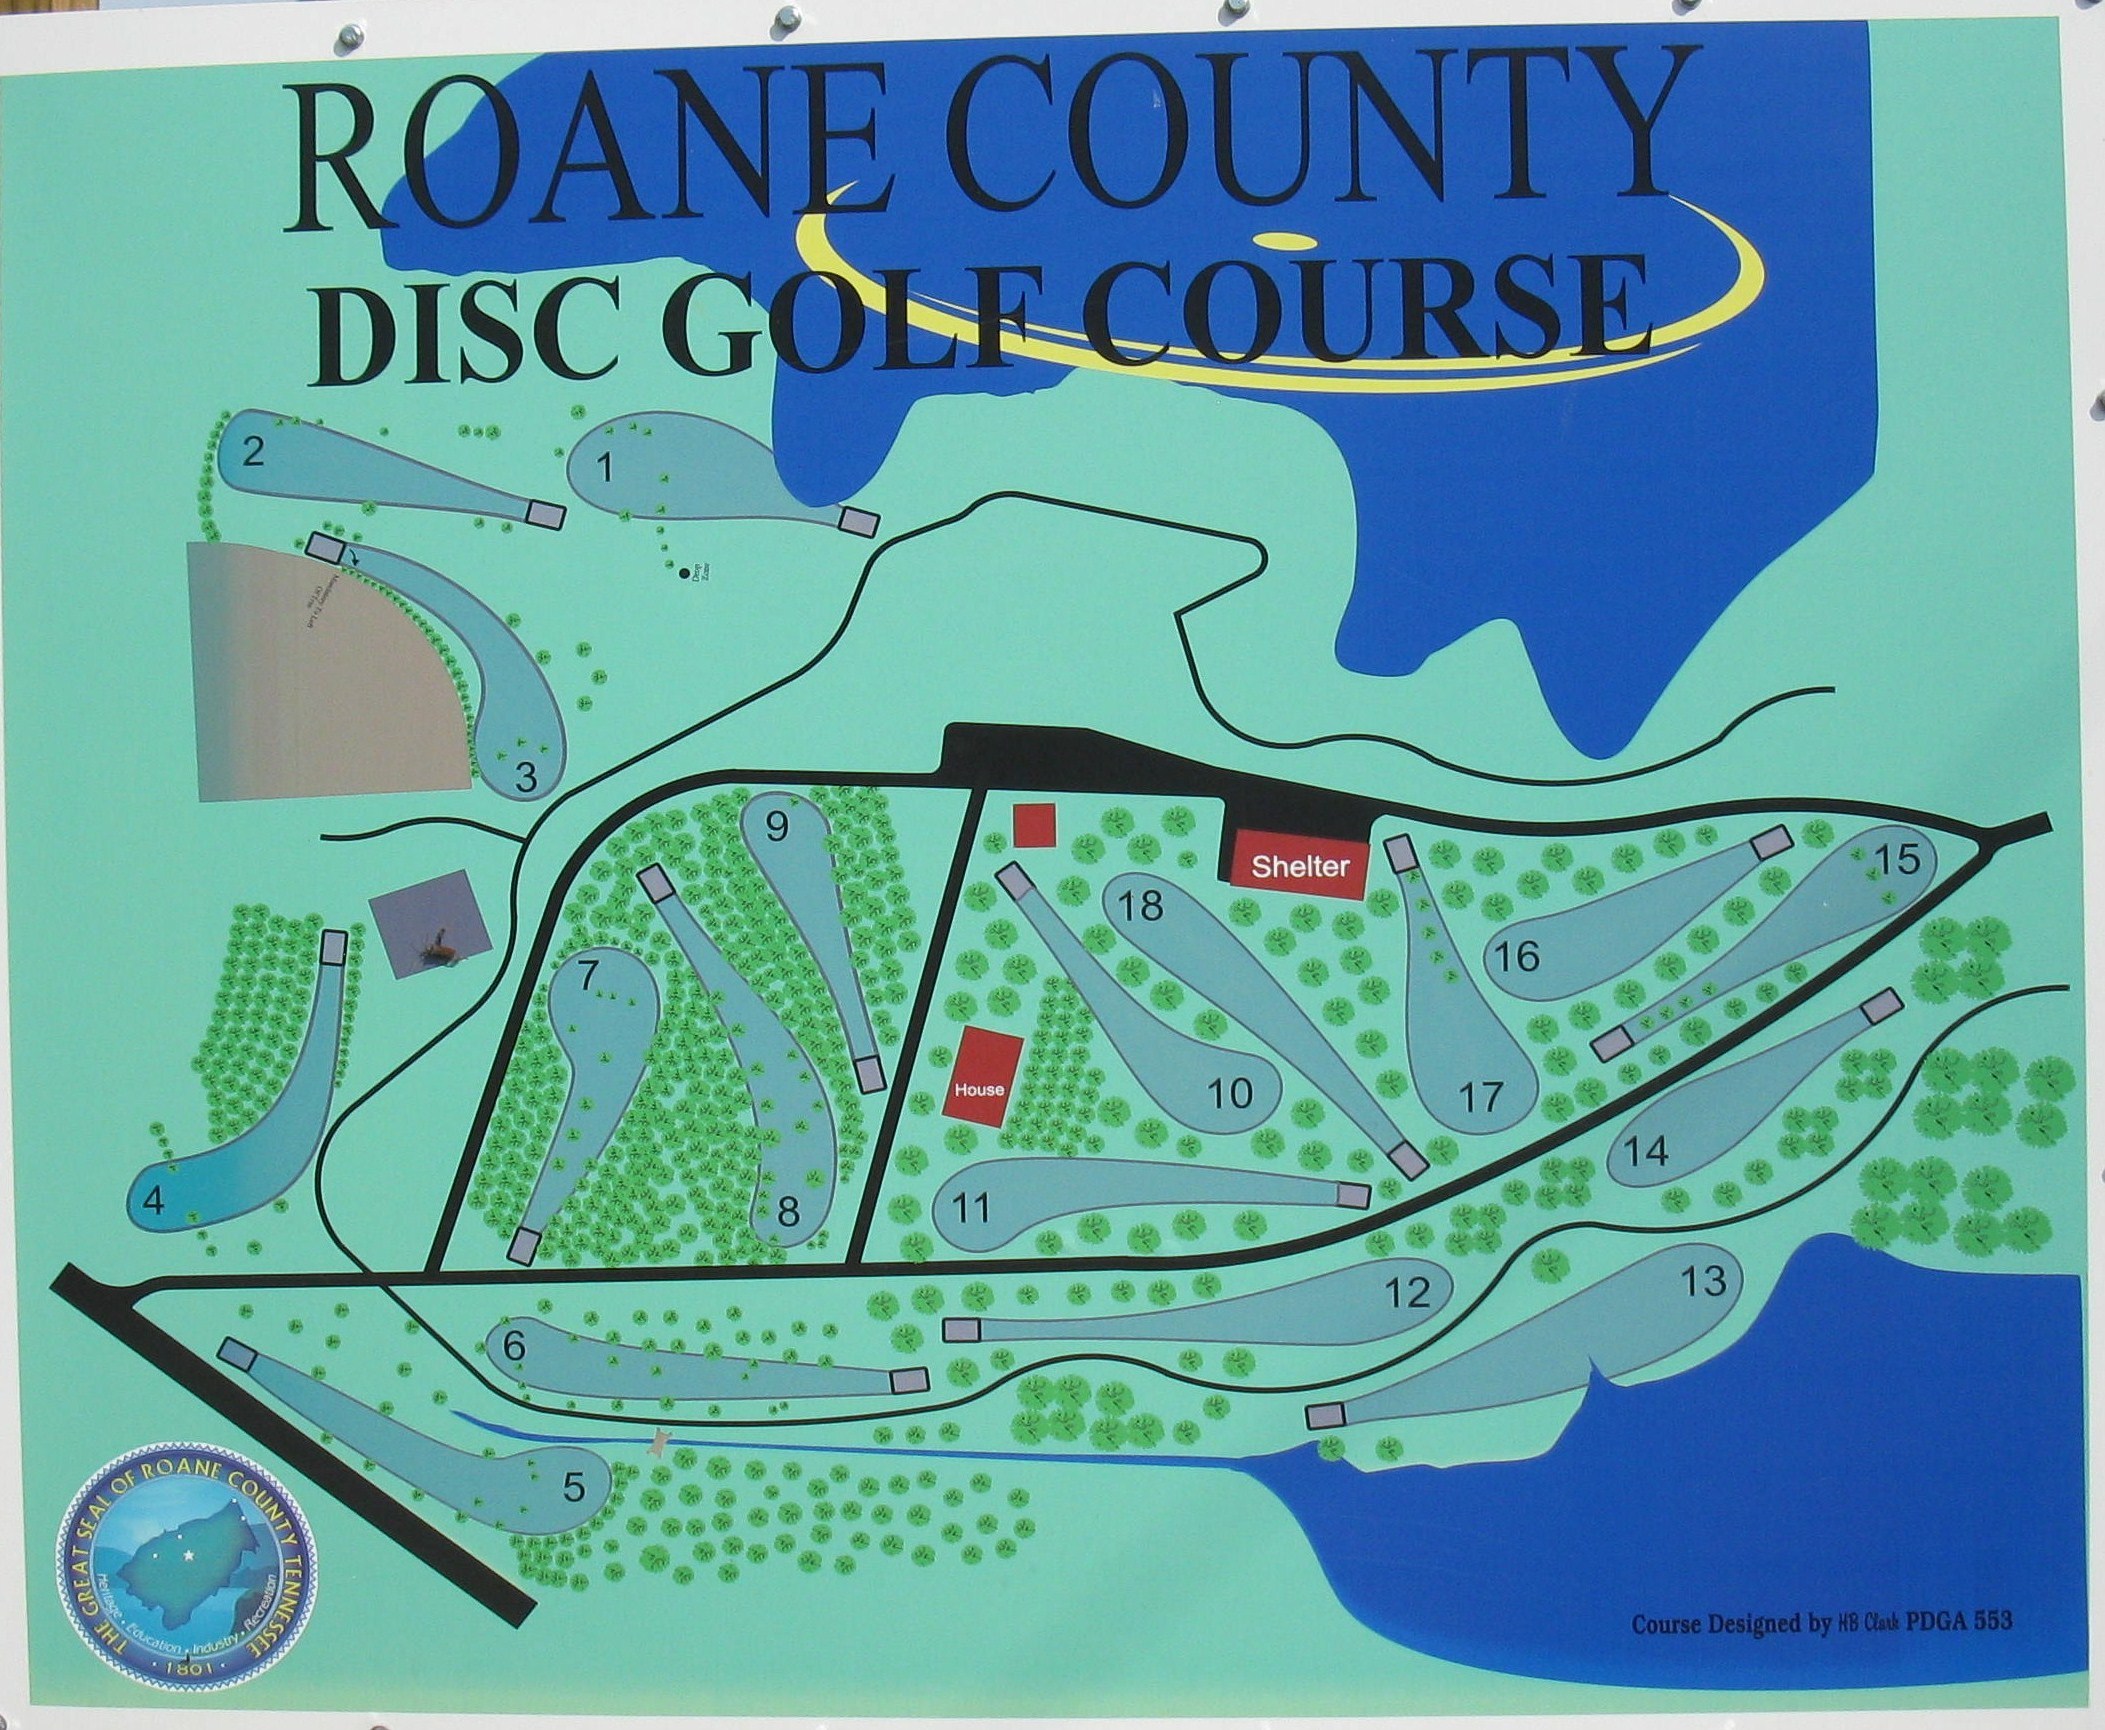 Roane County Parks - Disc Golf Course